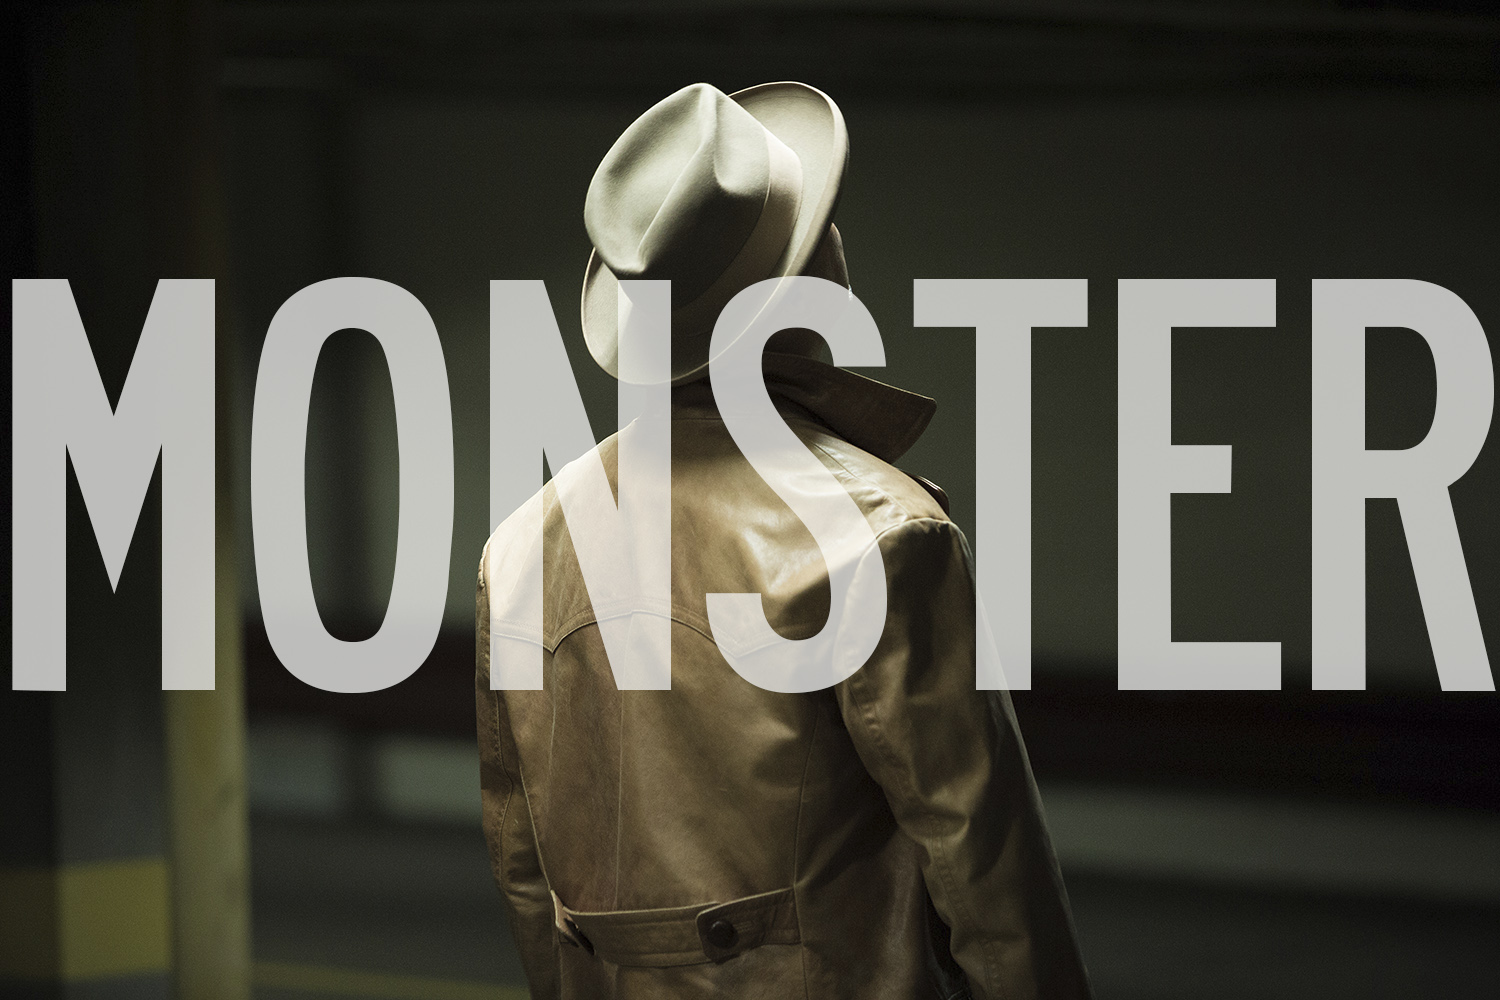 MONSTER - Based on the Bison Jack poem of the same name, Monster is a short film about the potential perils of poetry. Sponsored by Flatt Magazine and SeeSaw. Filmed in Savannah, Georgia.